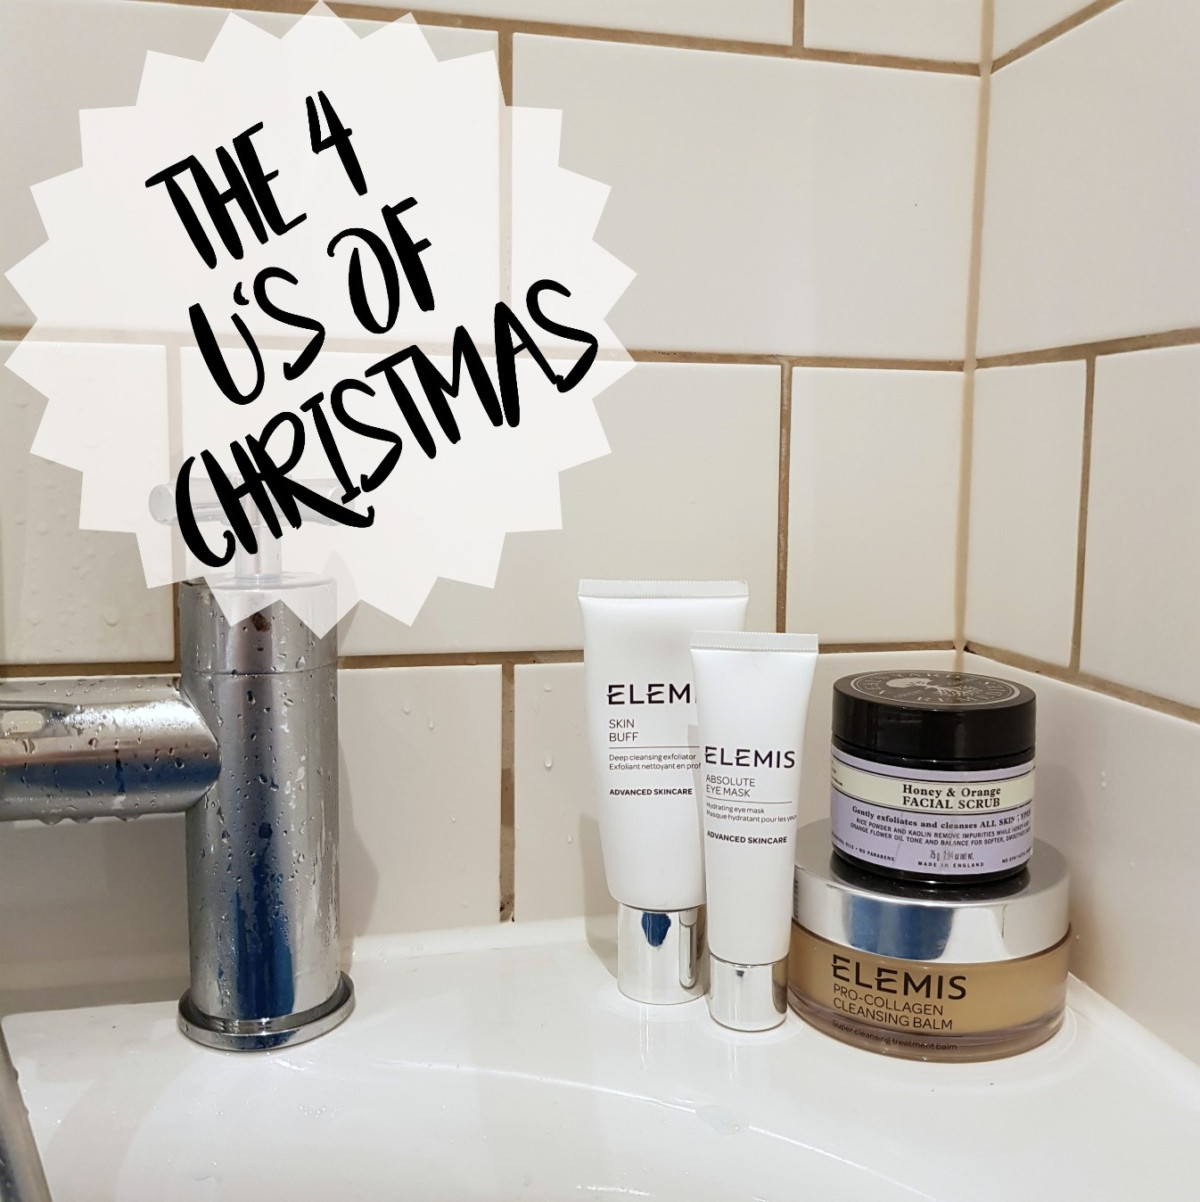 BLOGMAS, Christmas, The 4 U's of Christmas, Festive Season, Festive, Elemis, Neal's Yard, Skin Care, Skin, Beauty, Face, Bath, Bath Time, Chill, Relax, Unwind, Unburden, Under My Duvet, Understand, Blog A Book Etc, Fay